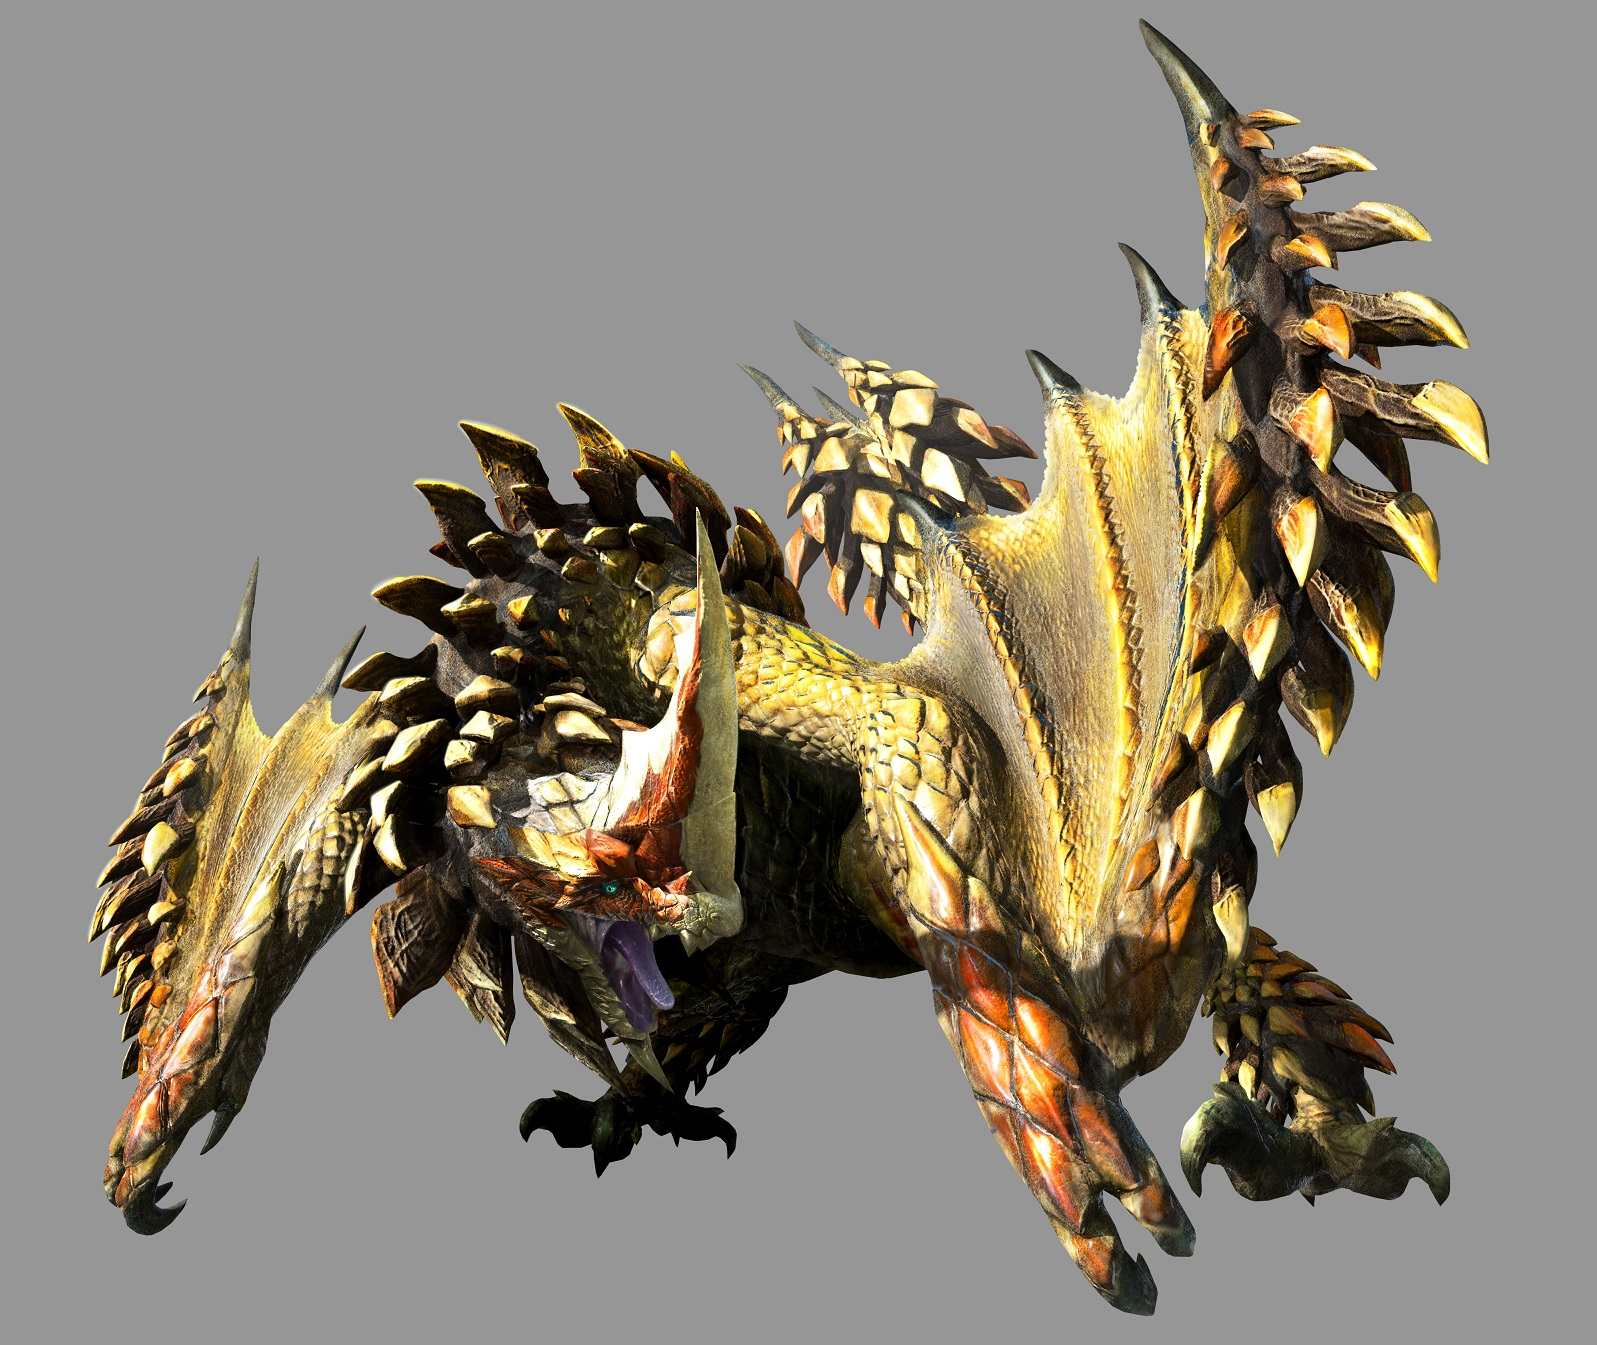 Beasts of monster hunter 4 ultimate seregios charlotte zarna monster hunter 4 ultimate beasts seregios angry pinecone voltagebd Image collections